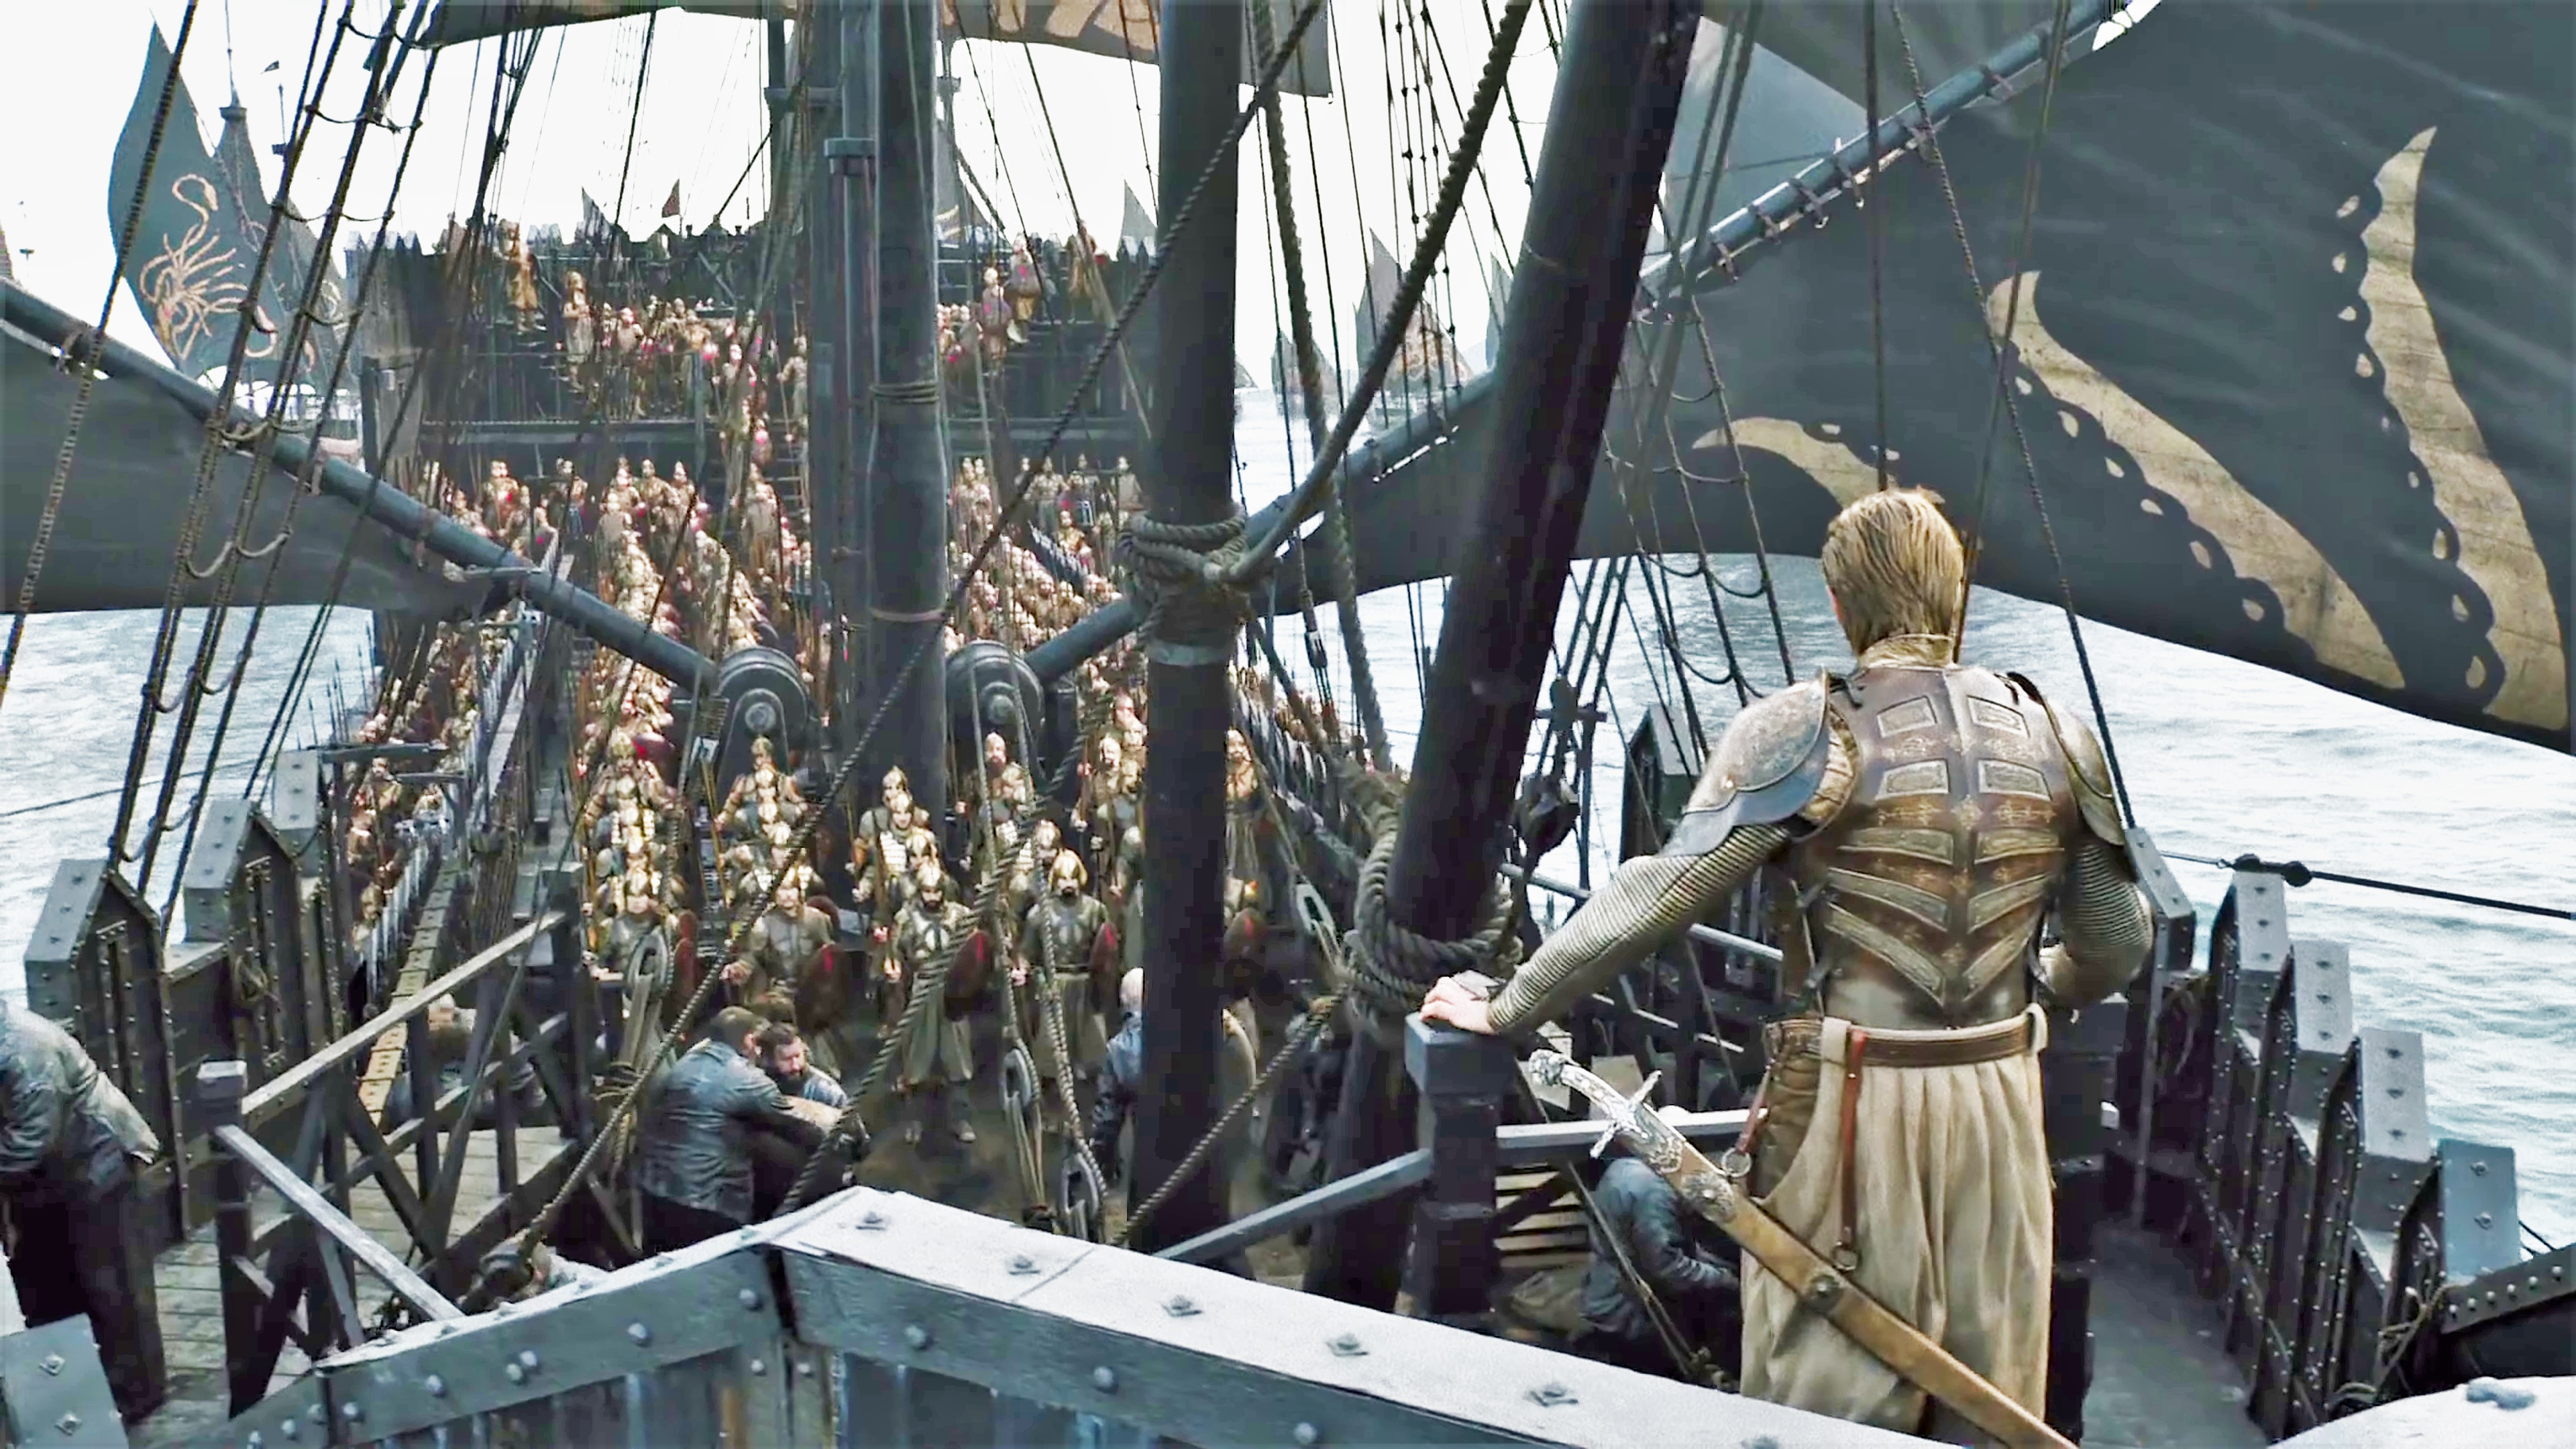 On Euron's Silence, Harry Strickland surveys the Golden Company under his command.